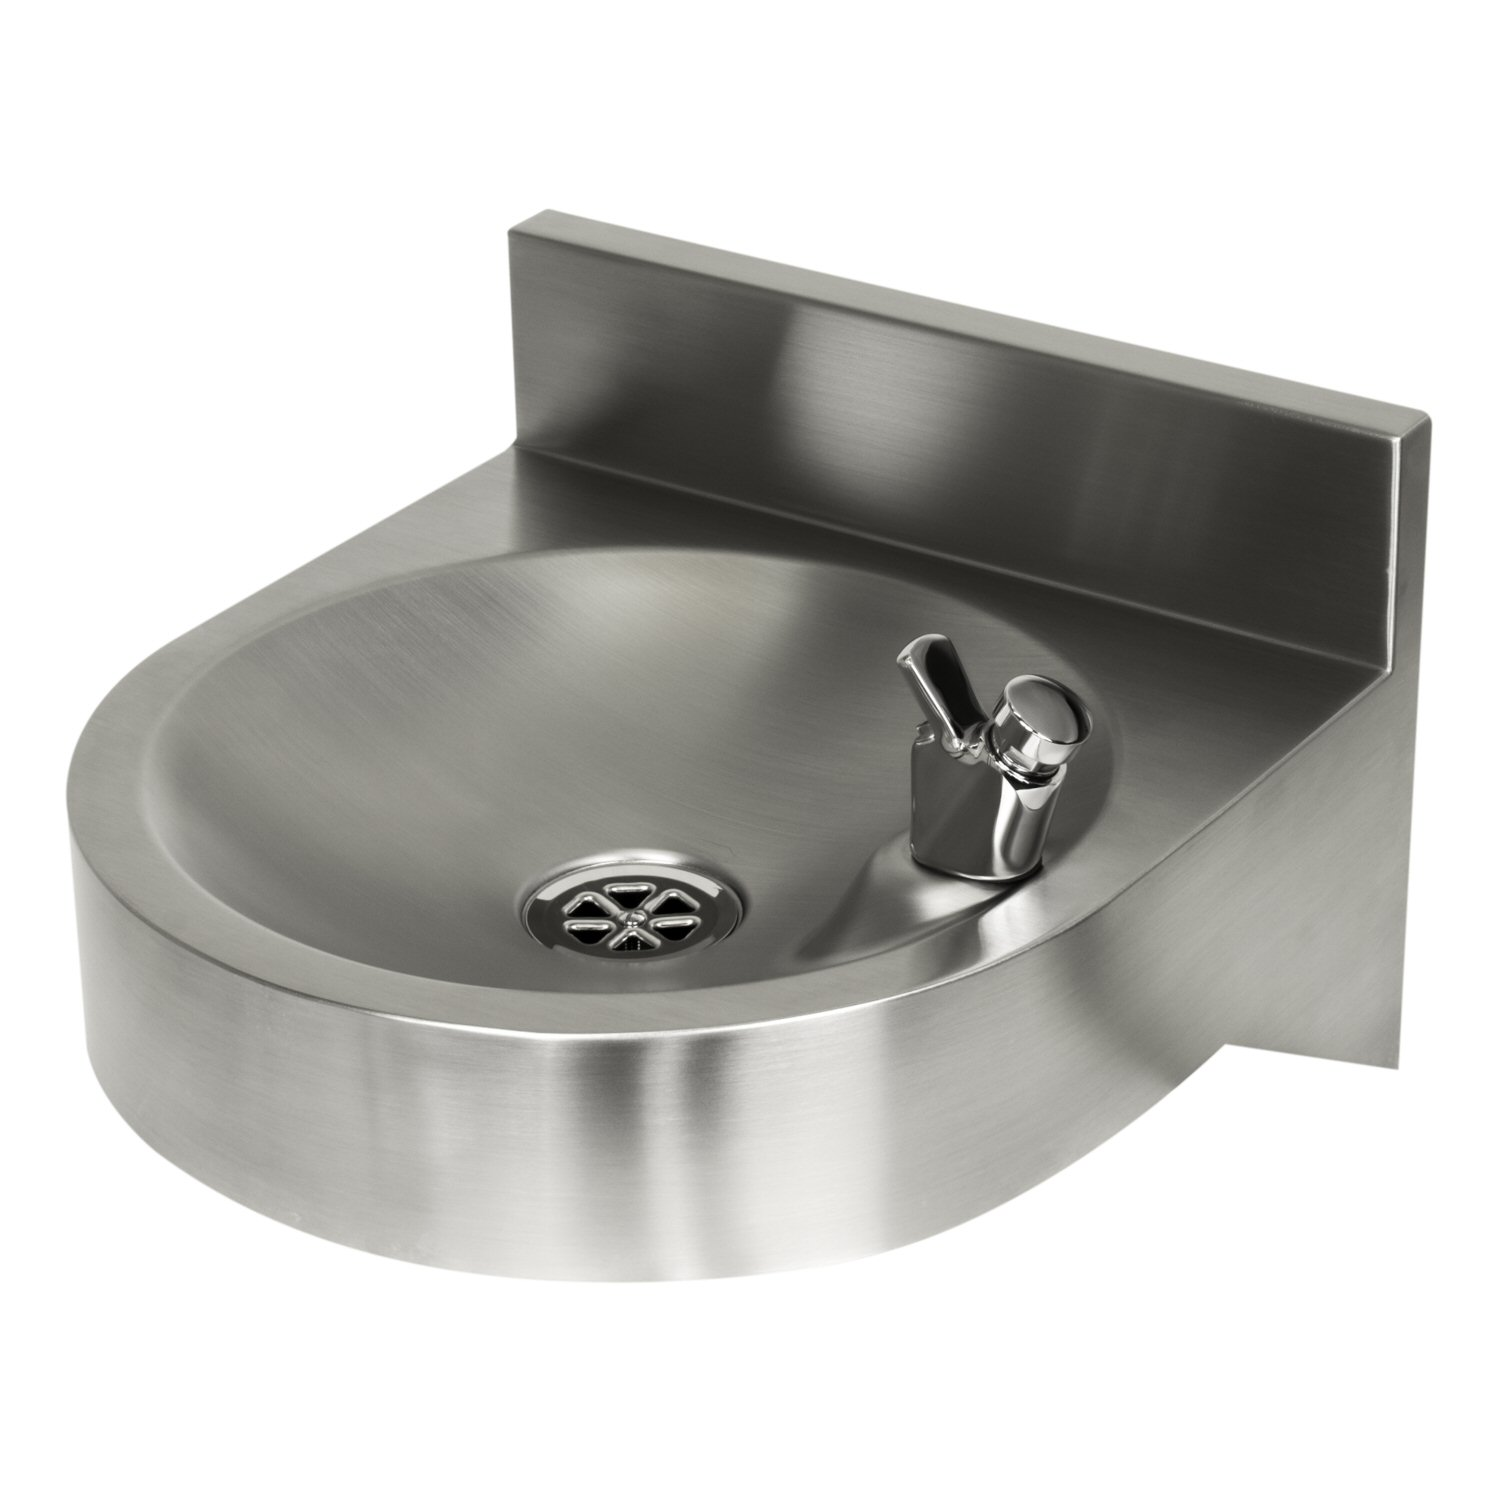 Bowl on Arm Architectural Style Drinking Fountain M-43A ... |Drinking Fountain